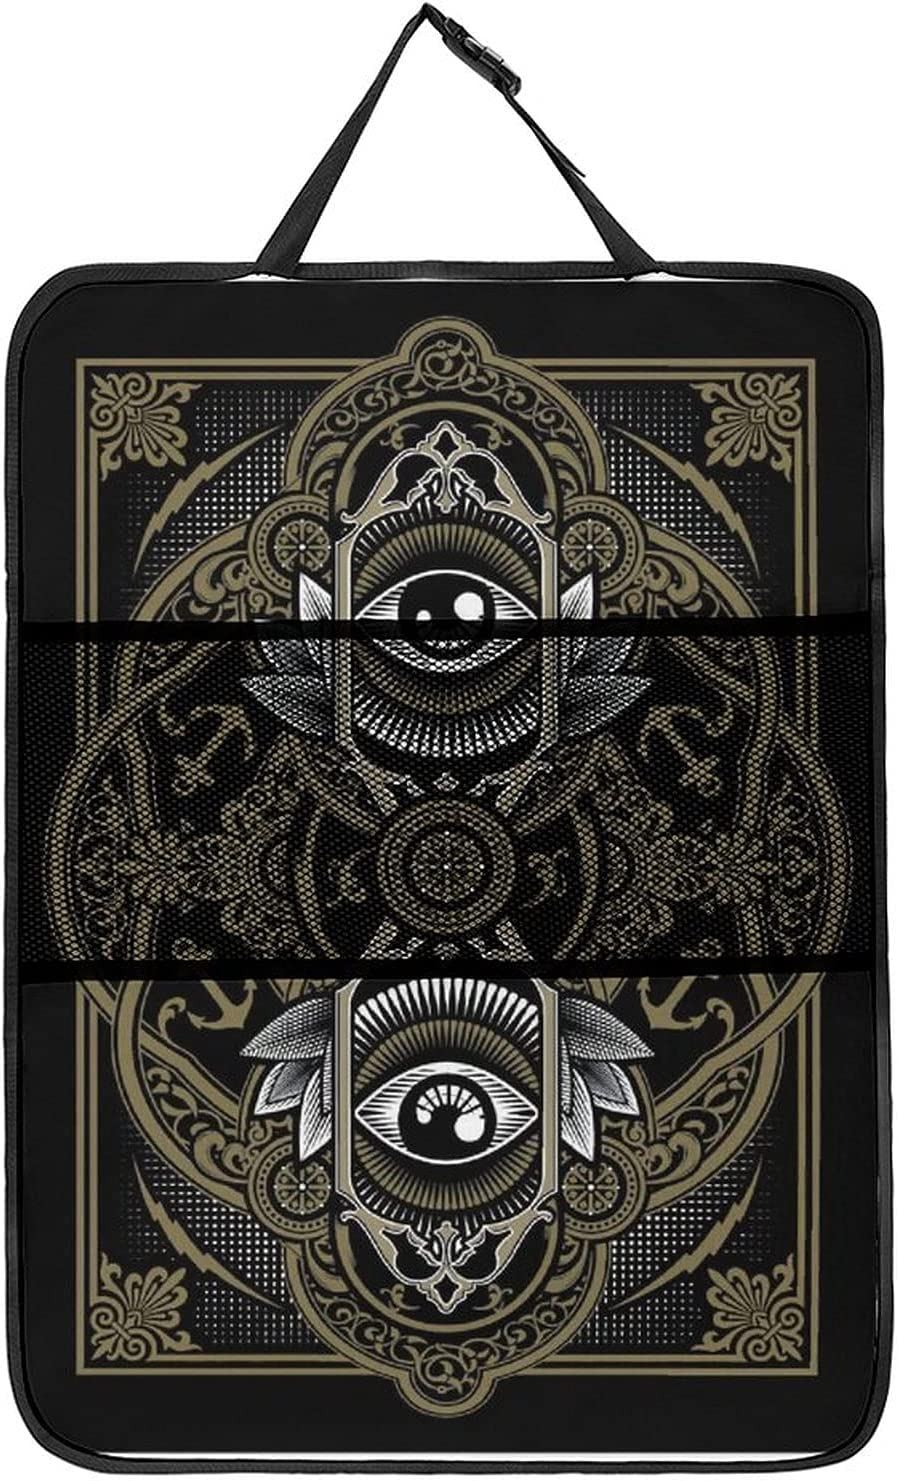 Recommendation Playing Card Exploration Car Organizers Free shipping on posting reviews Kick Protec Mat Seat